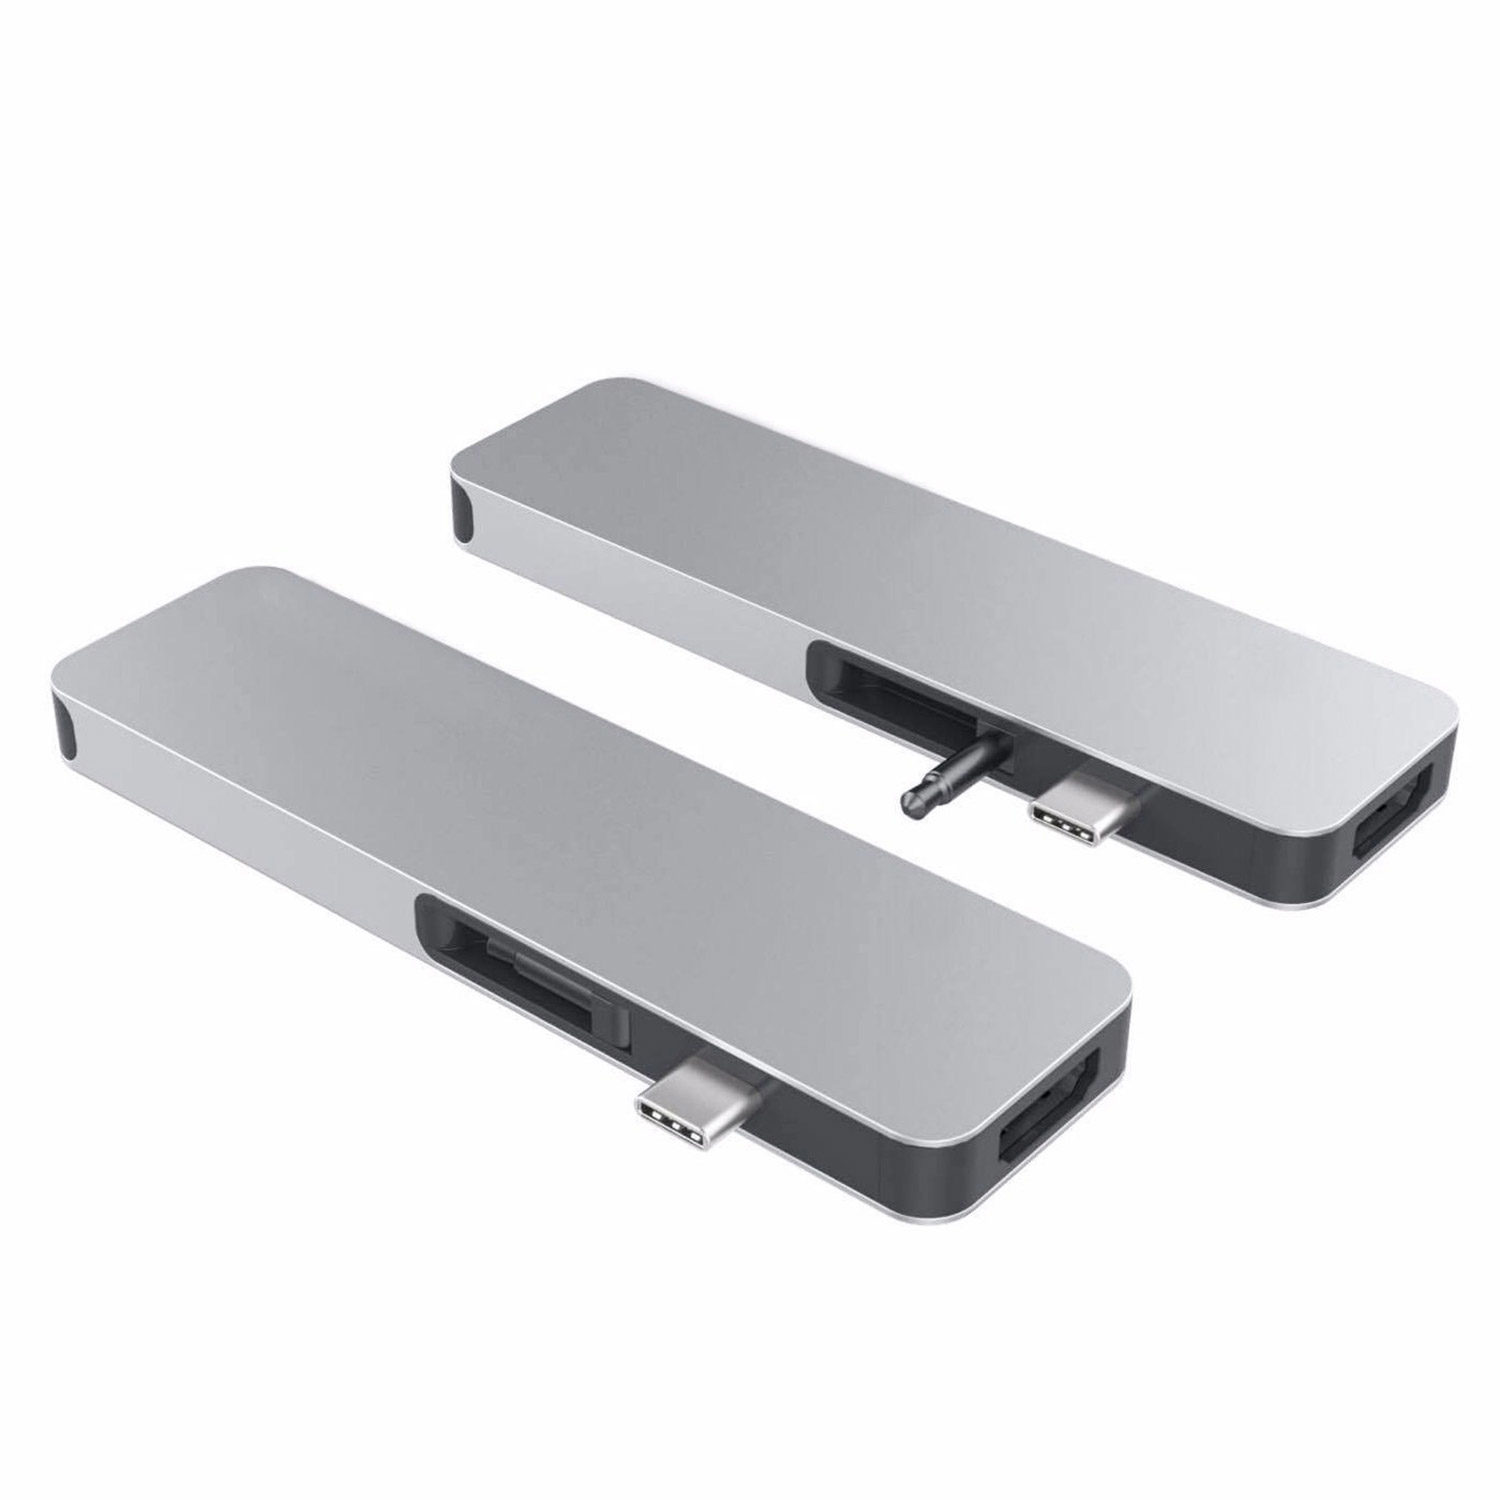 Hyper Solo hub for Macbook & USB-C devices Silver